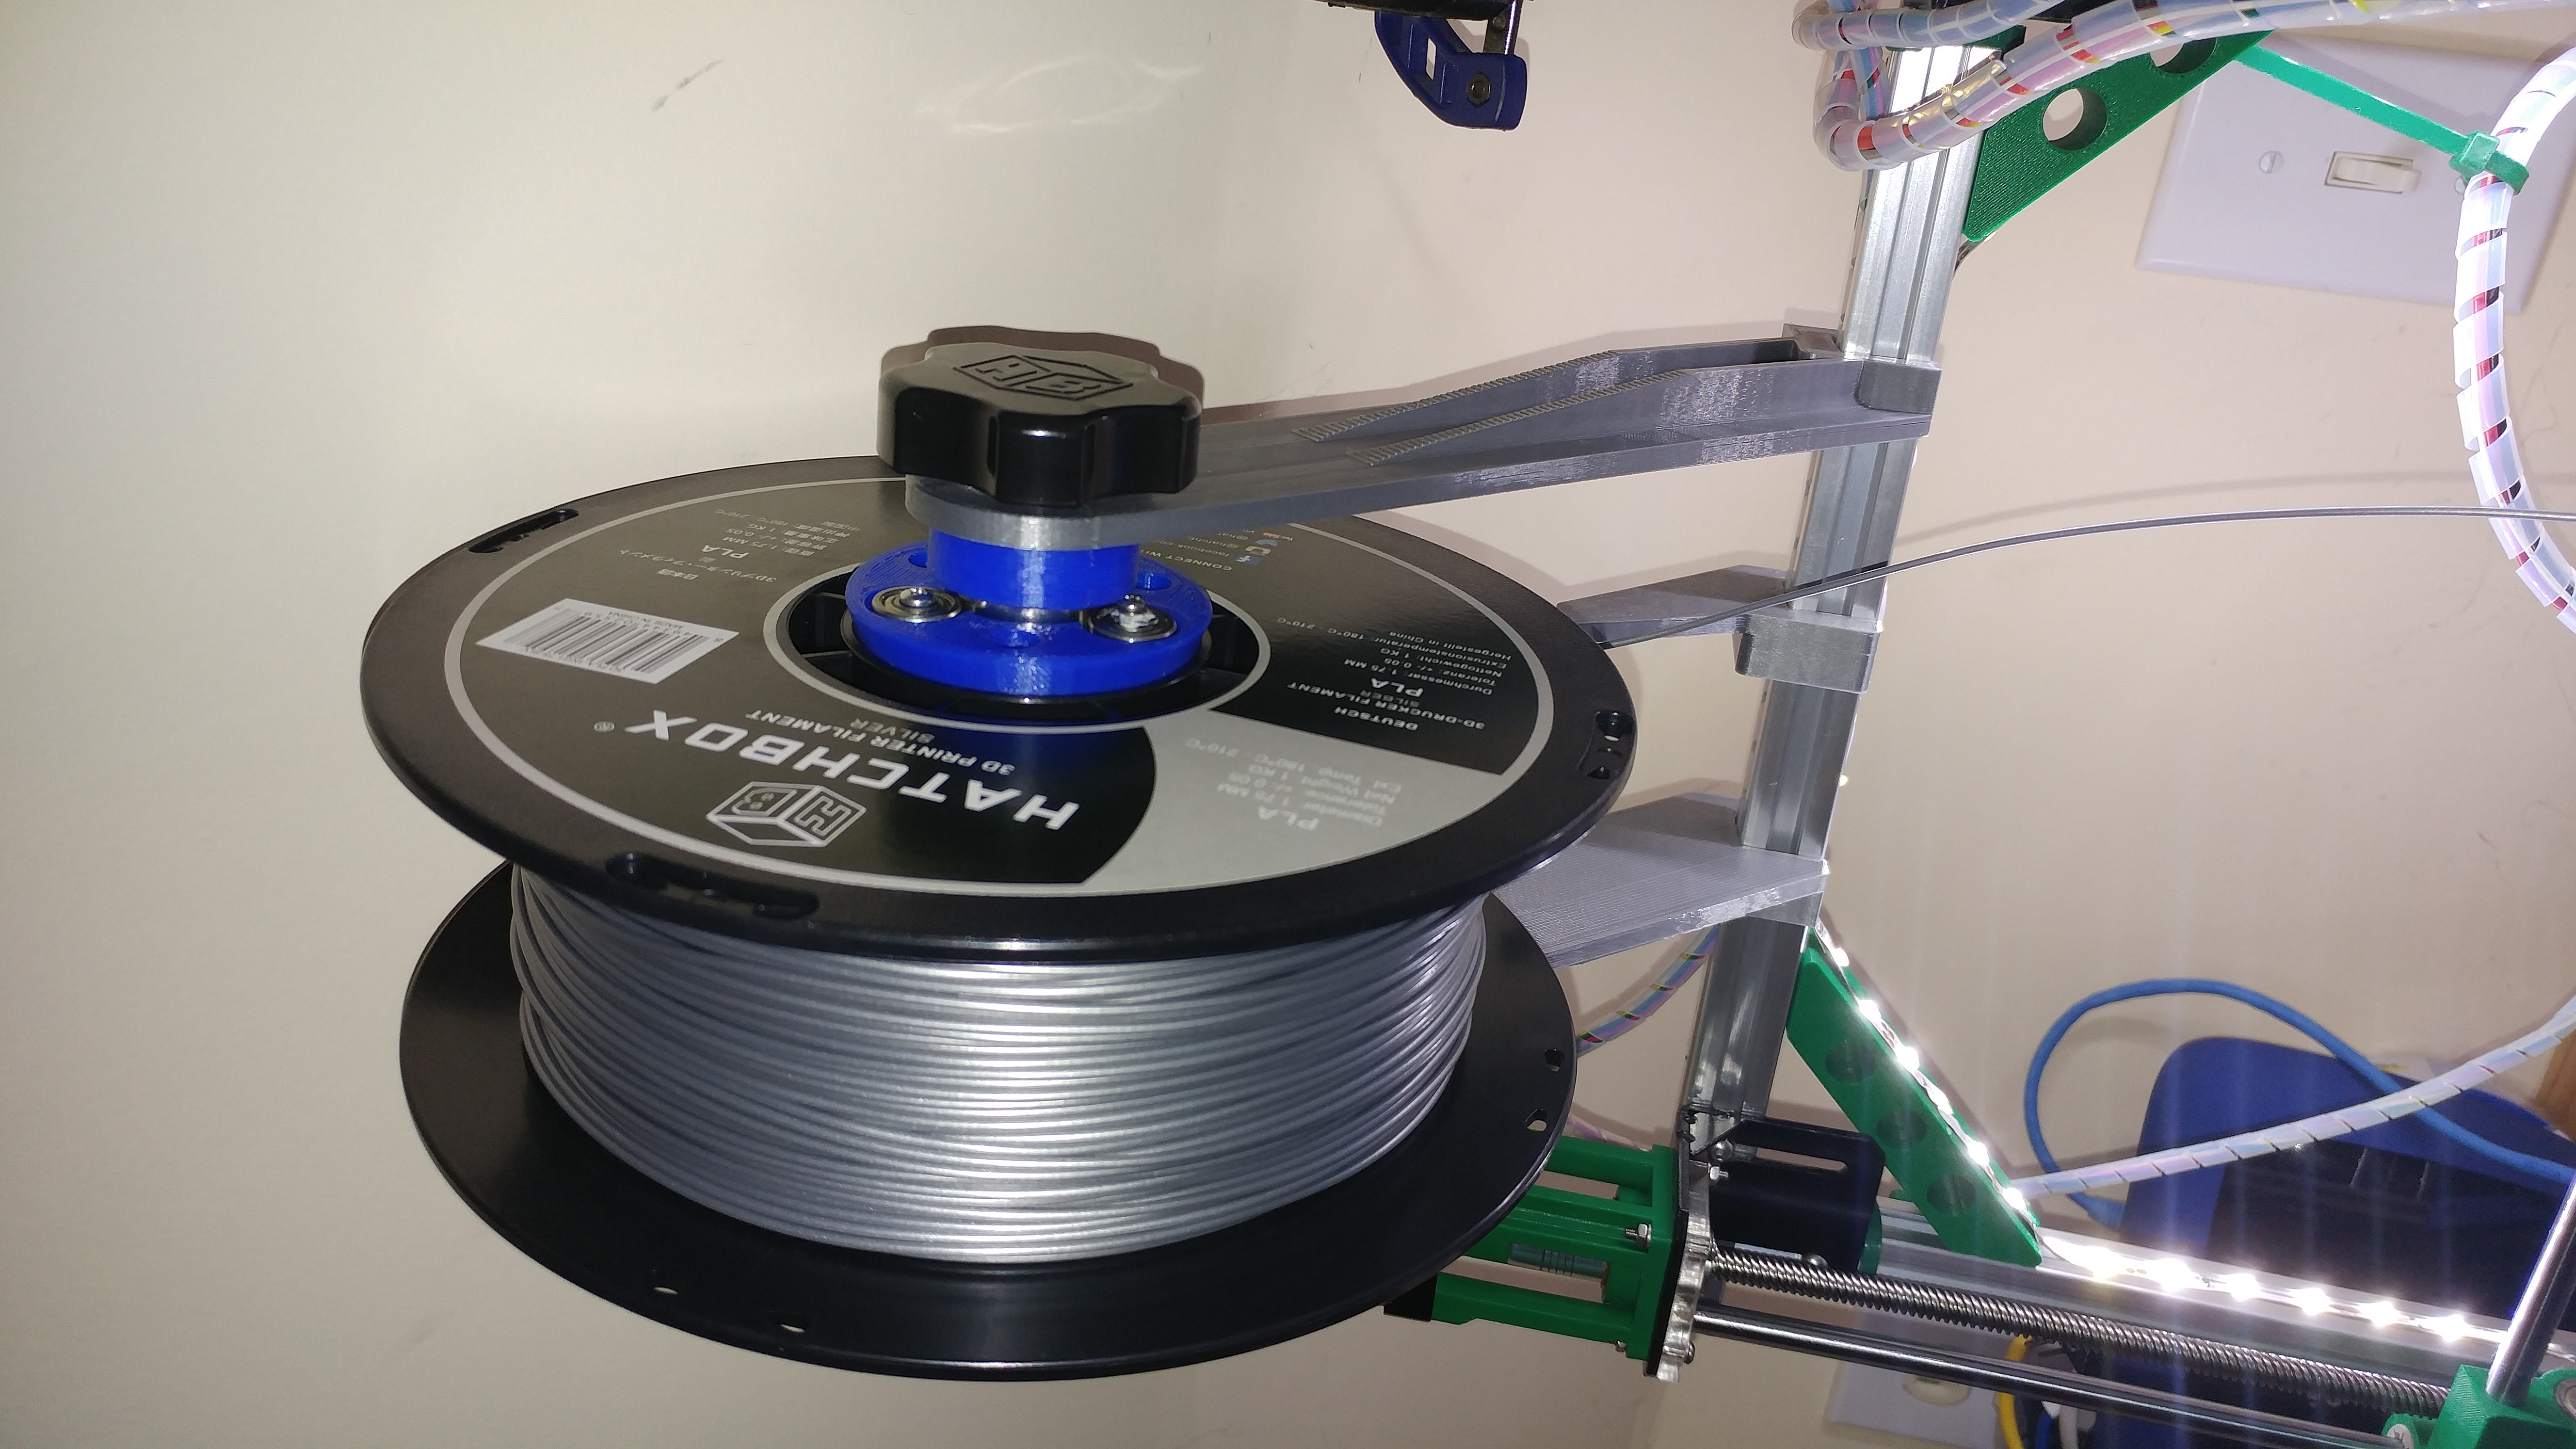 Folger Tech i3 2020 Spool Holder and Guide by jmbneaf - Thingiverse